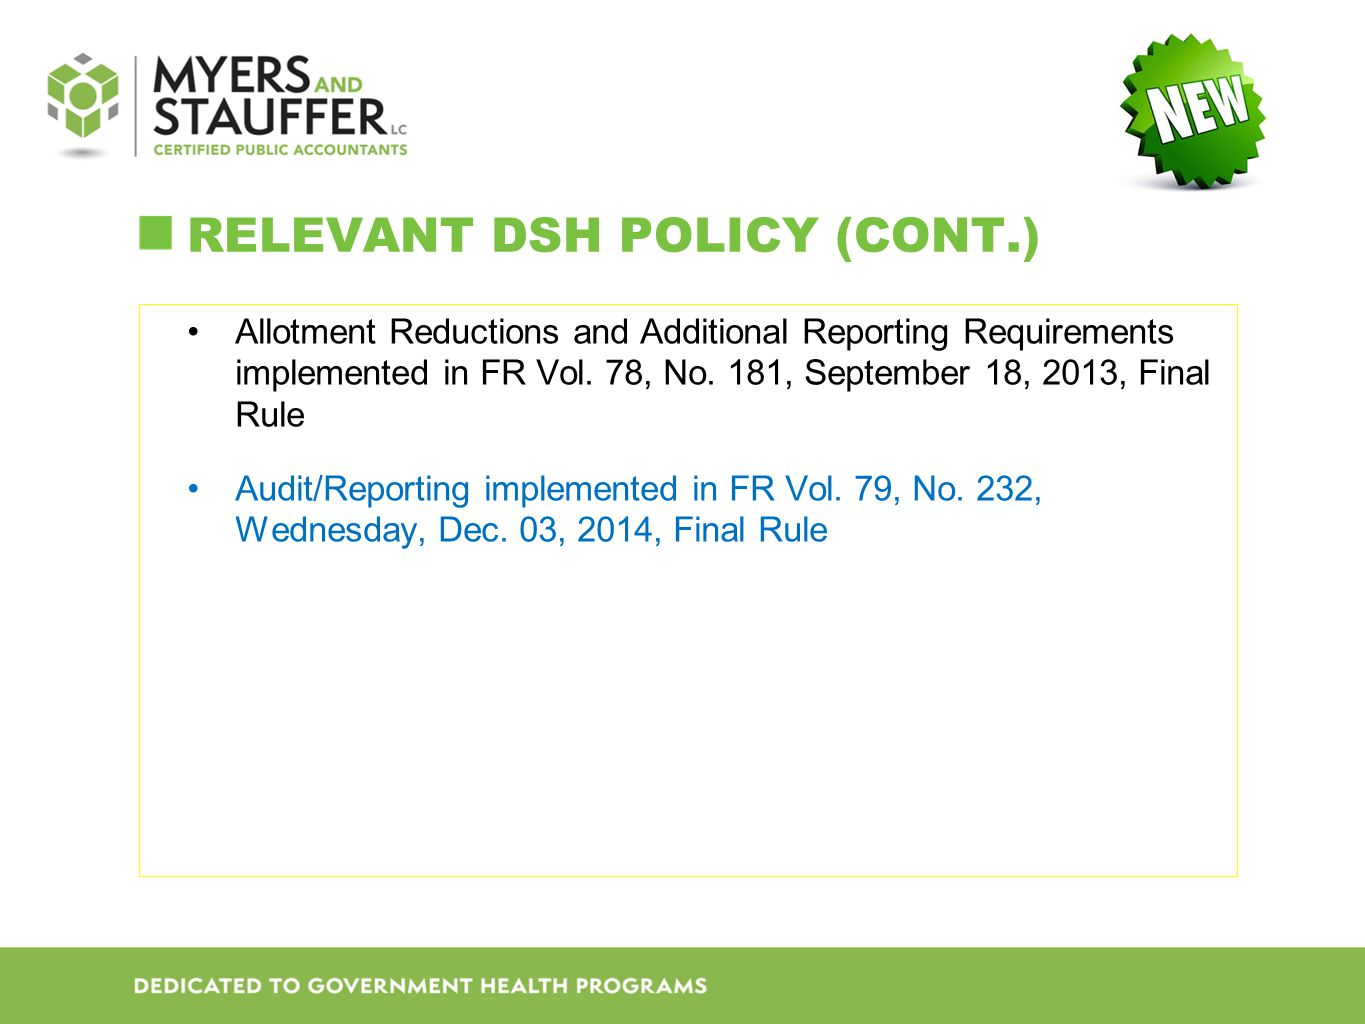 ReLevant DSH Policy (cont.)